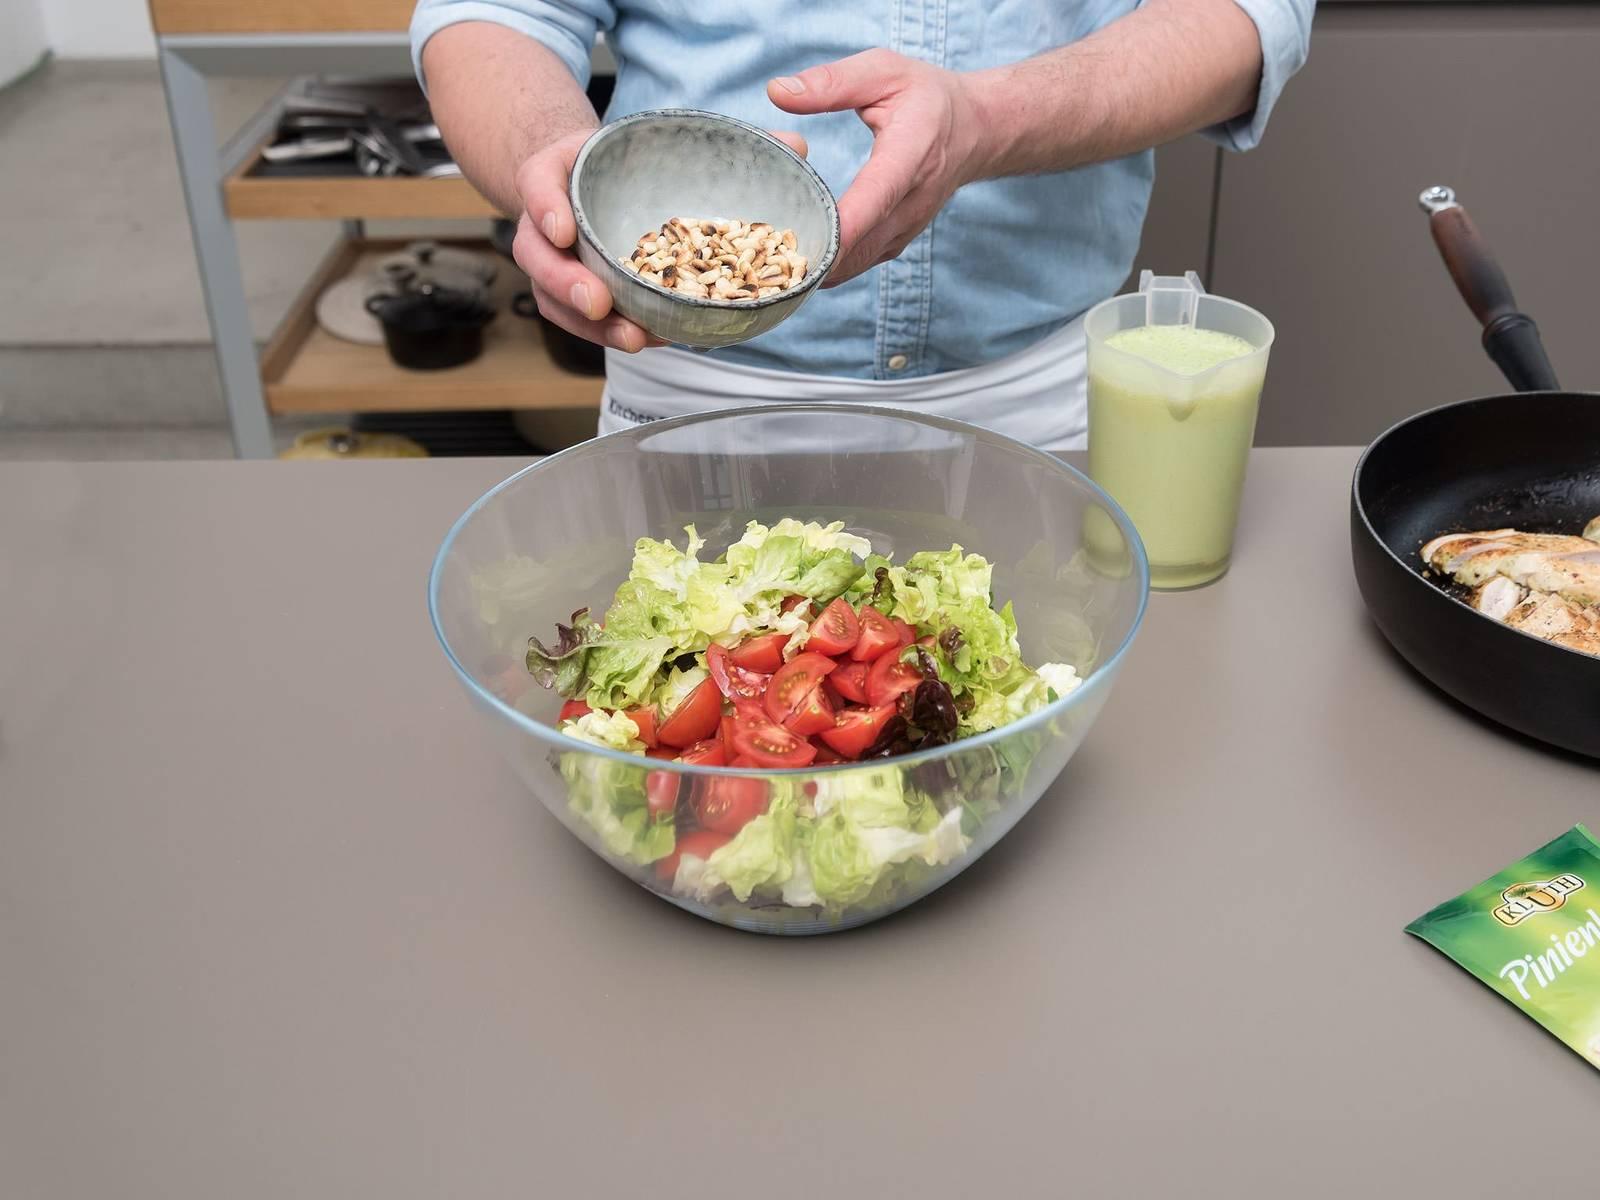 In the meantime, toast pine nuts in small frying pan over medium heat for approx. 3 min., or until golden brown. Add to salad. Pour some of the remaining dressing on top and toss to coat. Plate salad and serve with chicken breast on top. Enjoy!